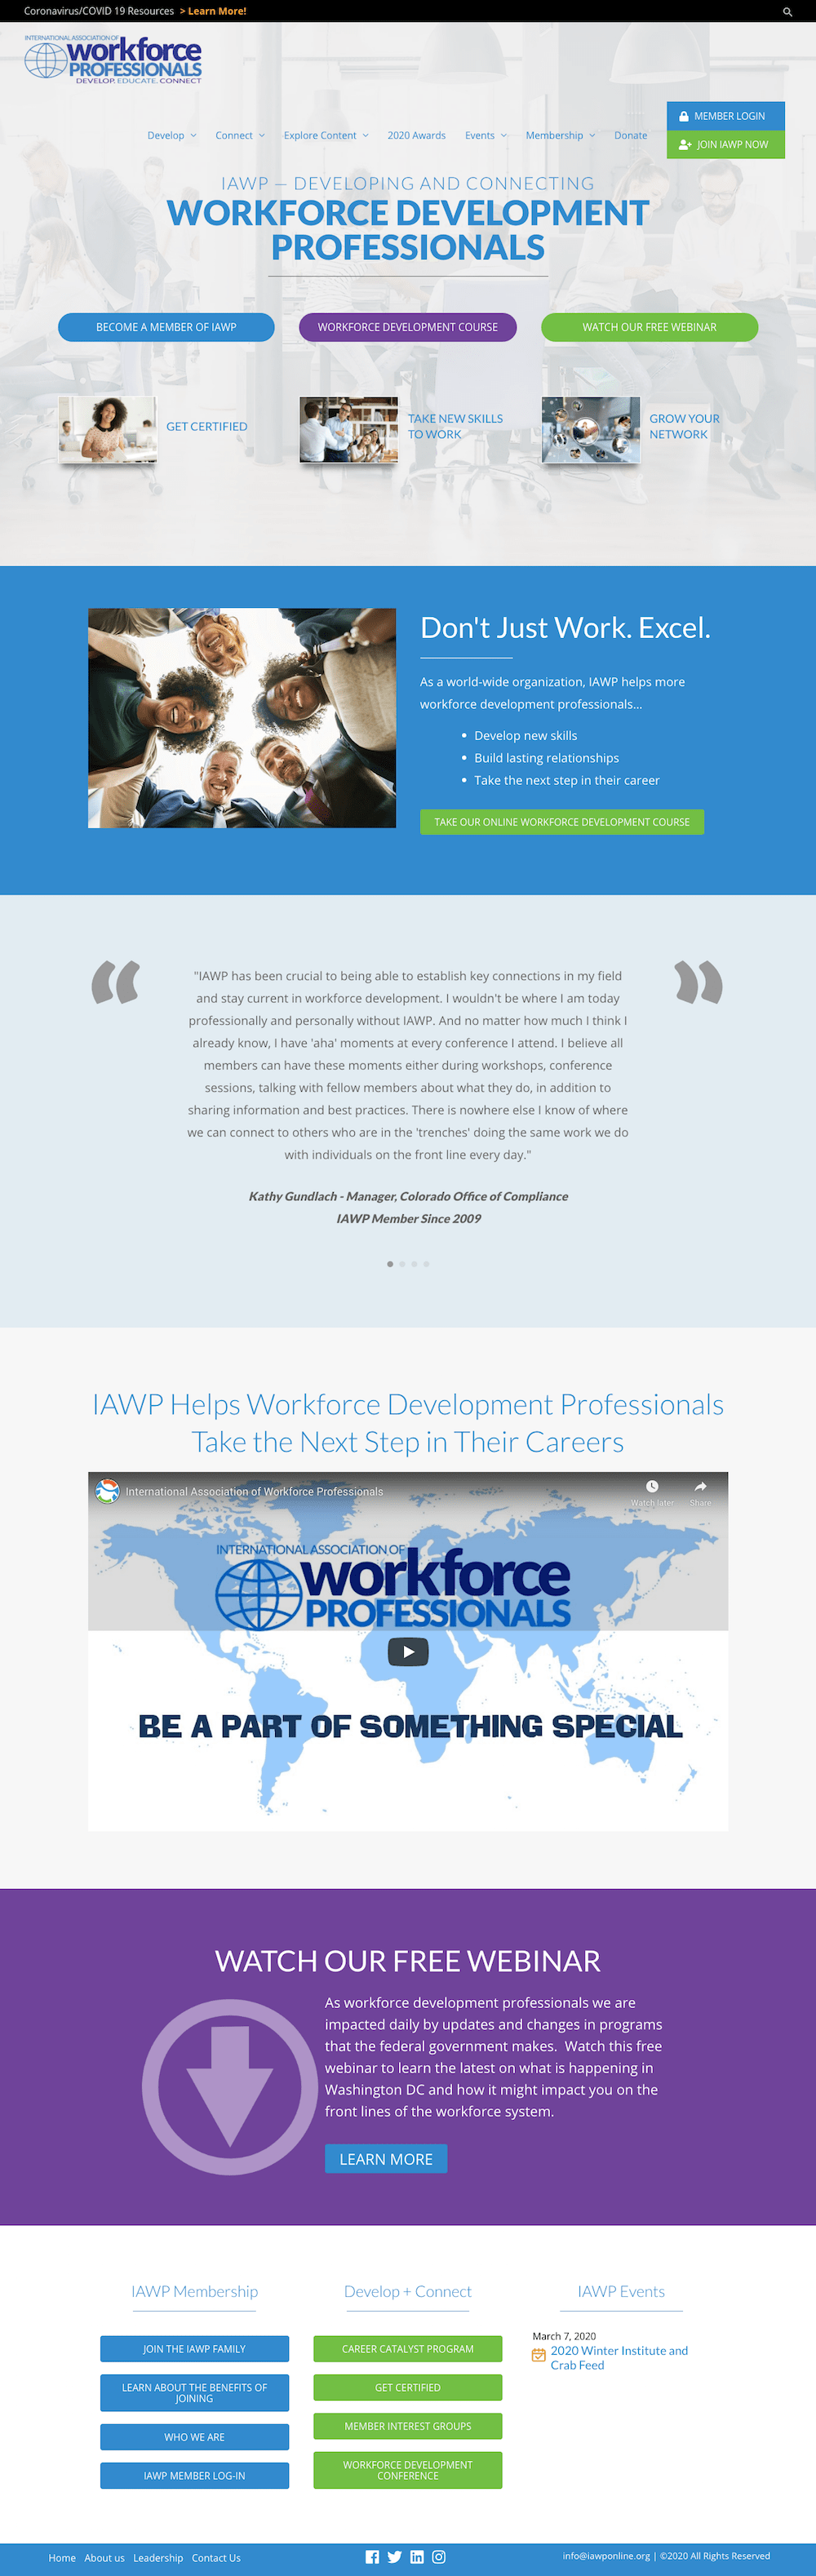 International Association of Workforce Professionals Website